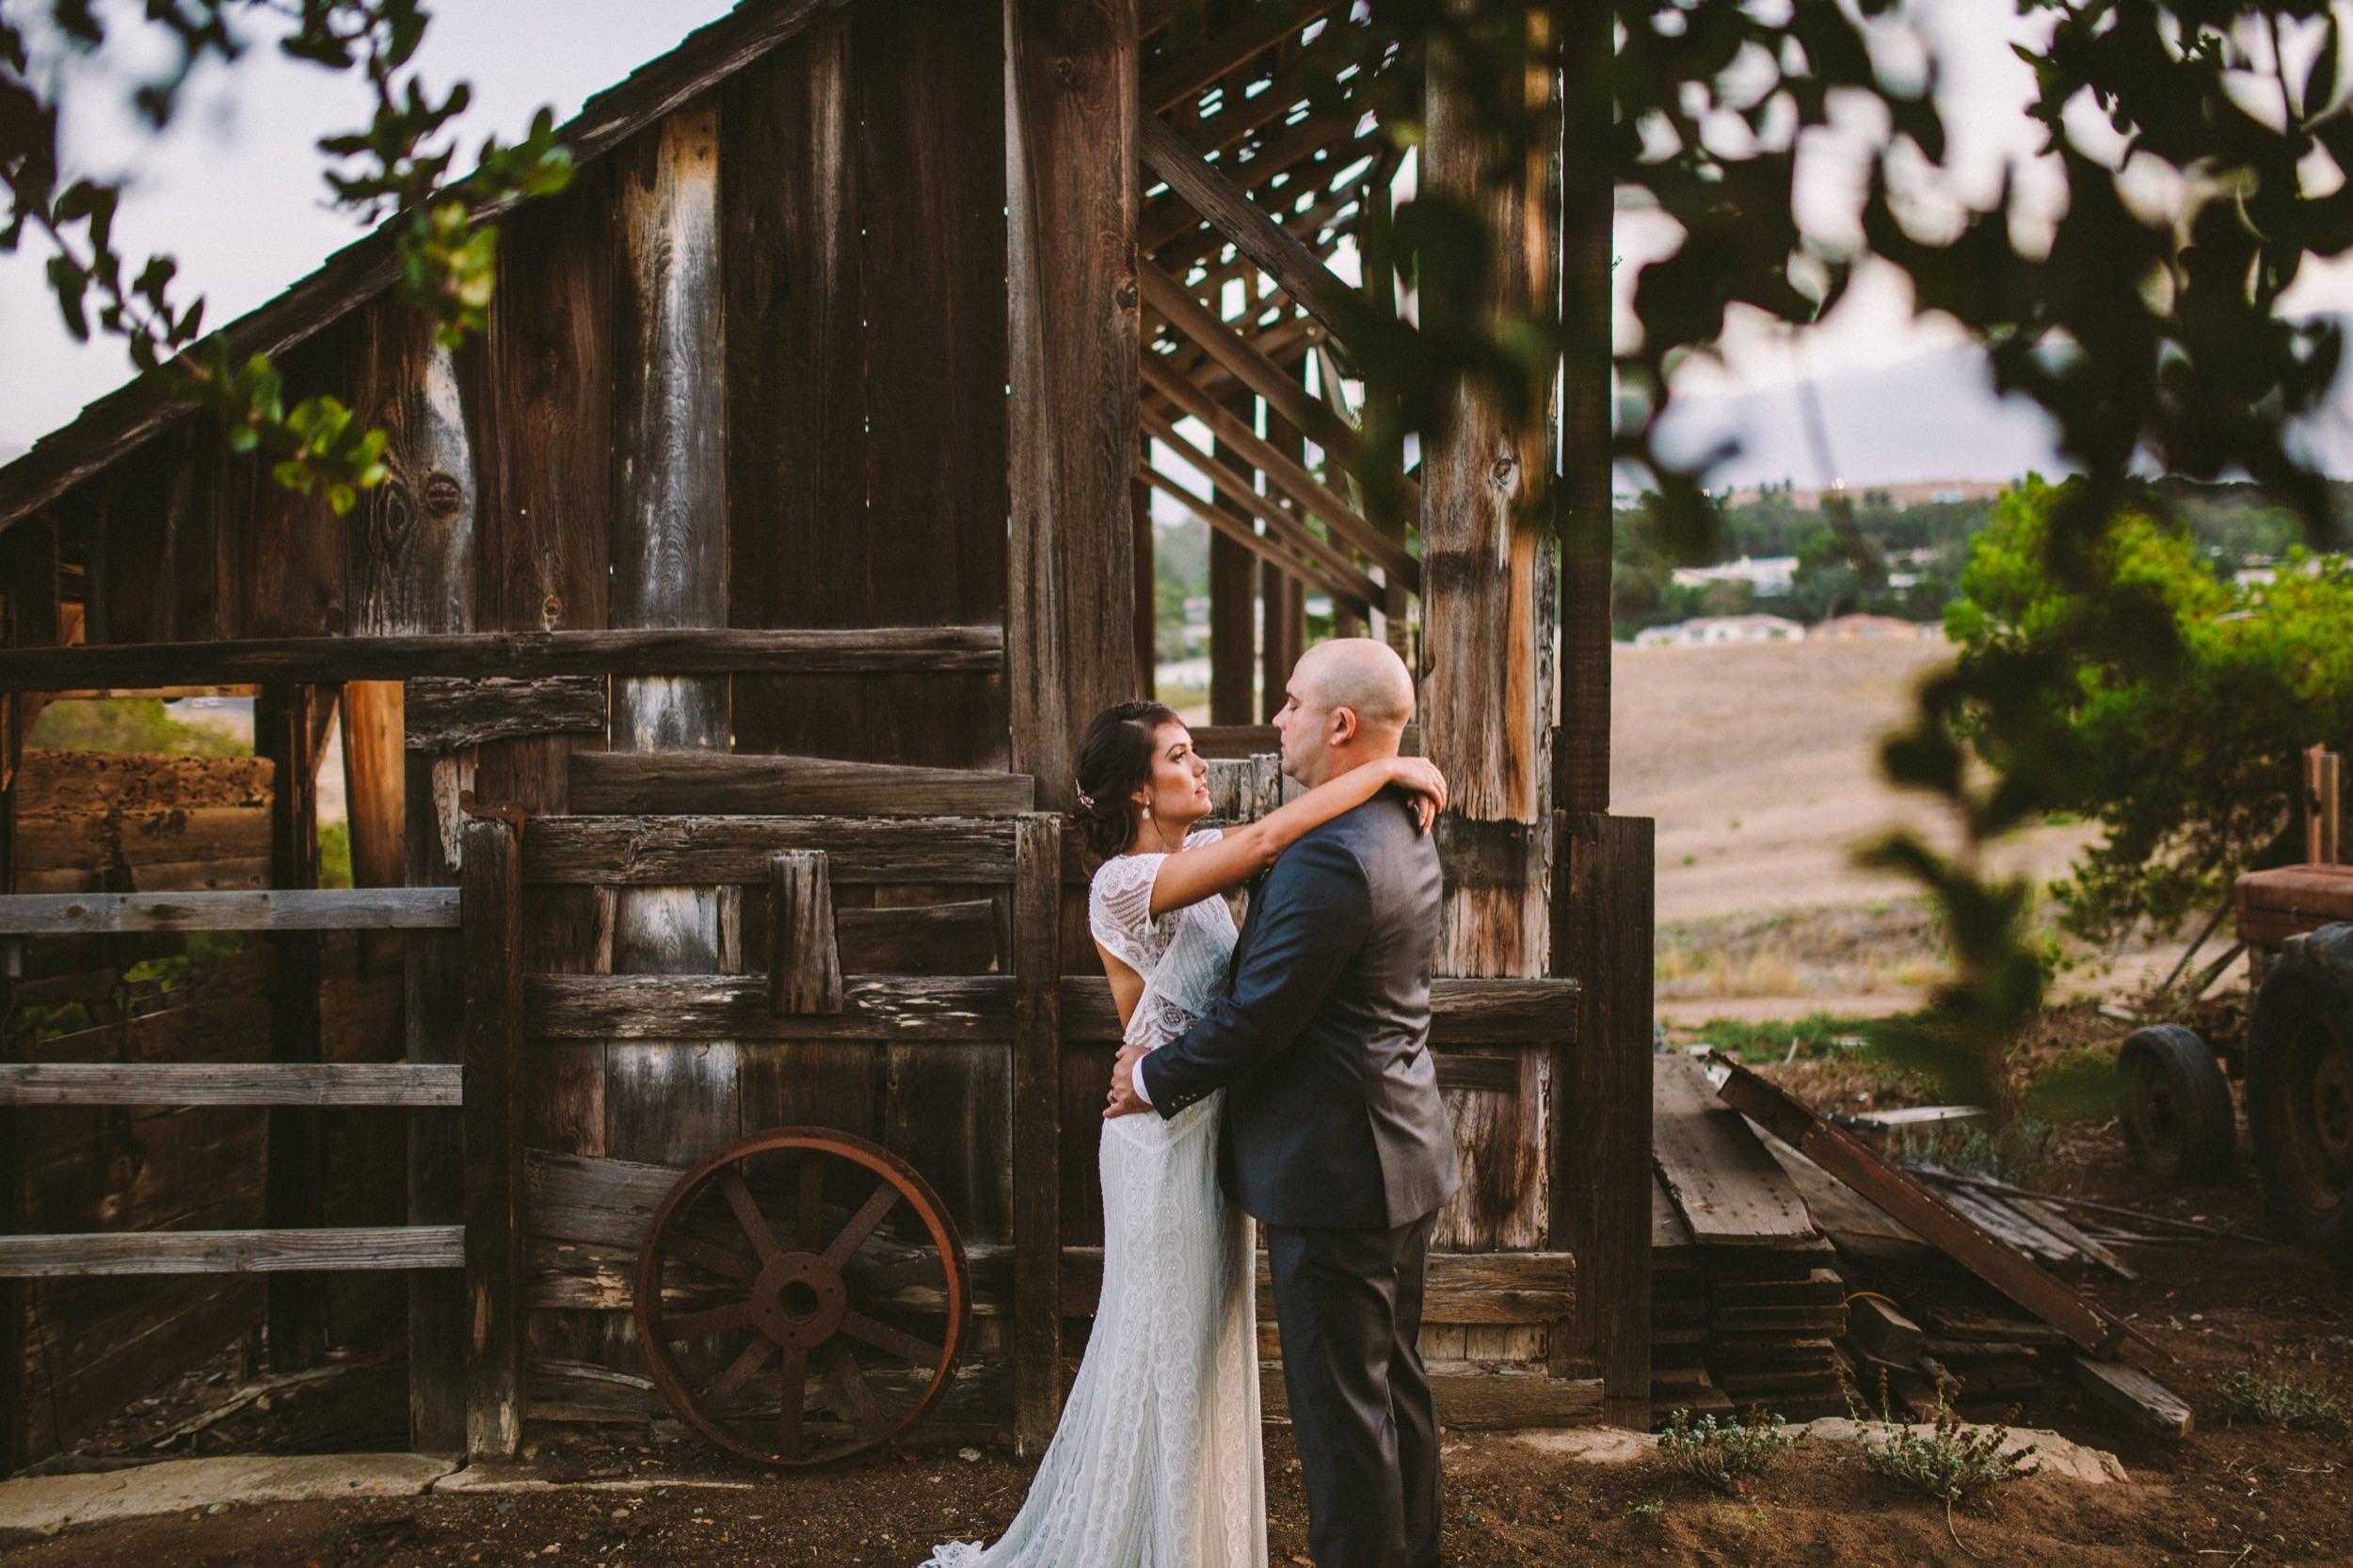 Rustic Barn Wedding Photography in Carlsbad